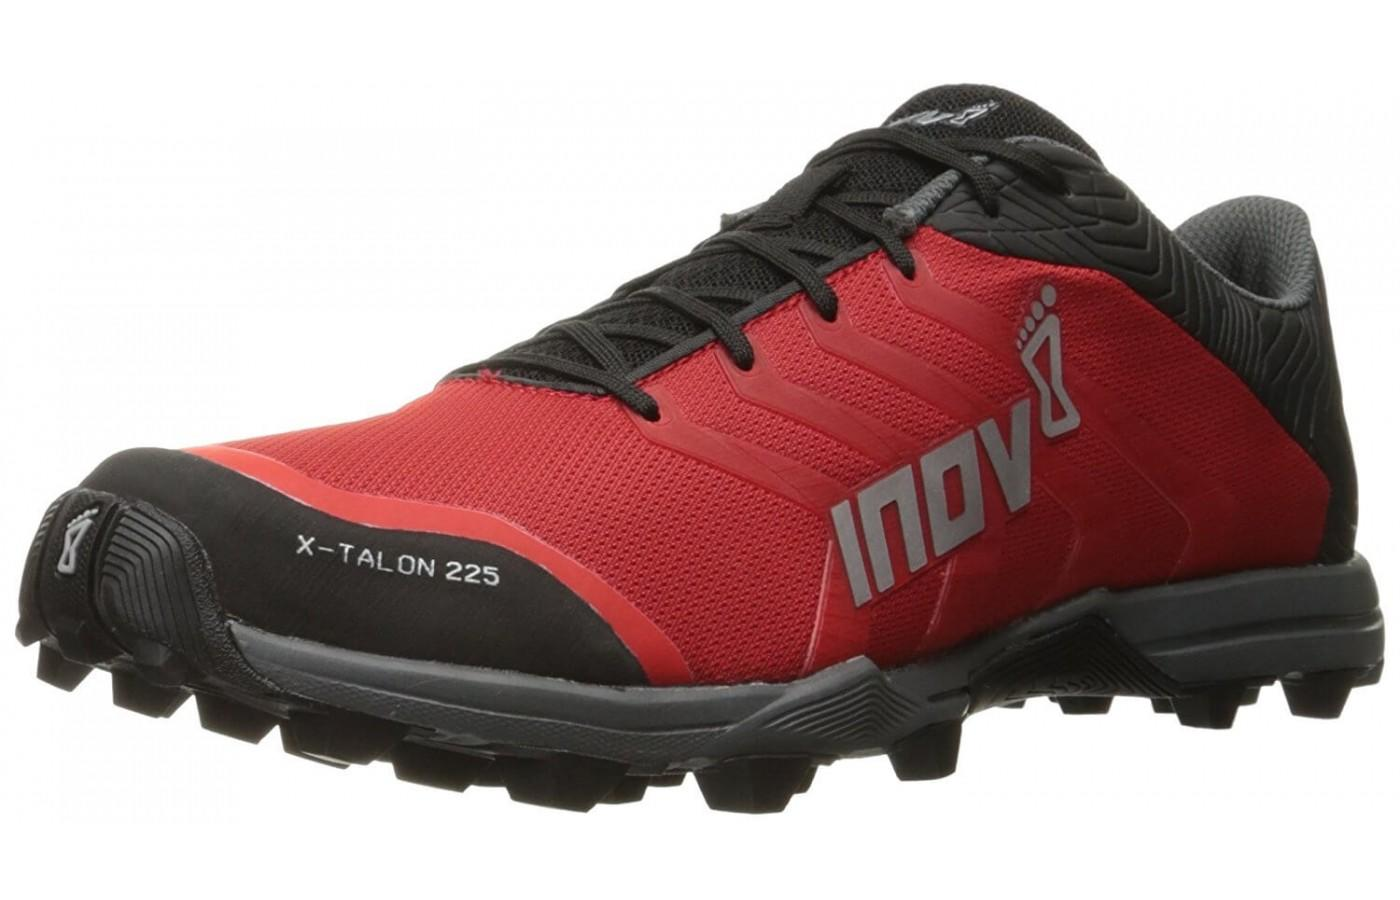 Inov-8 X-Talon 225's rugged competitive look complete with protective rubber toe and heel bumpers